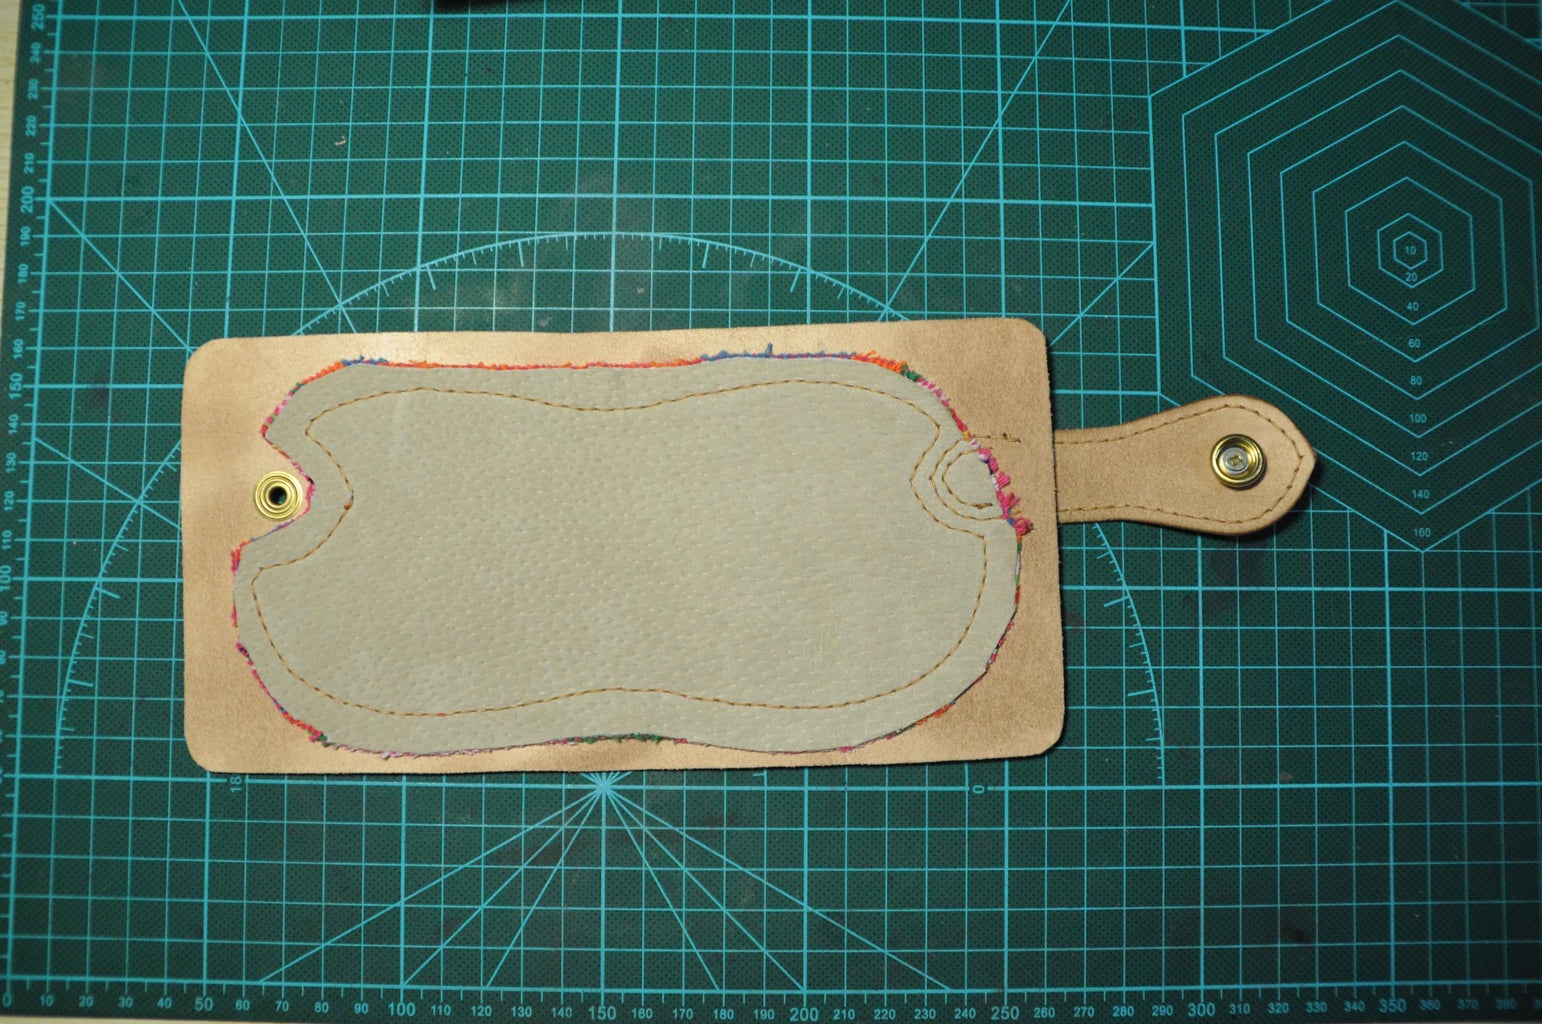 After Sew Left Part, You Can Go on to Pierce Marks and Punch Holes. You Can Add a Layer of Pig Skin As Lining for the Strap, Here I Didn't Do It.